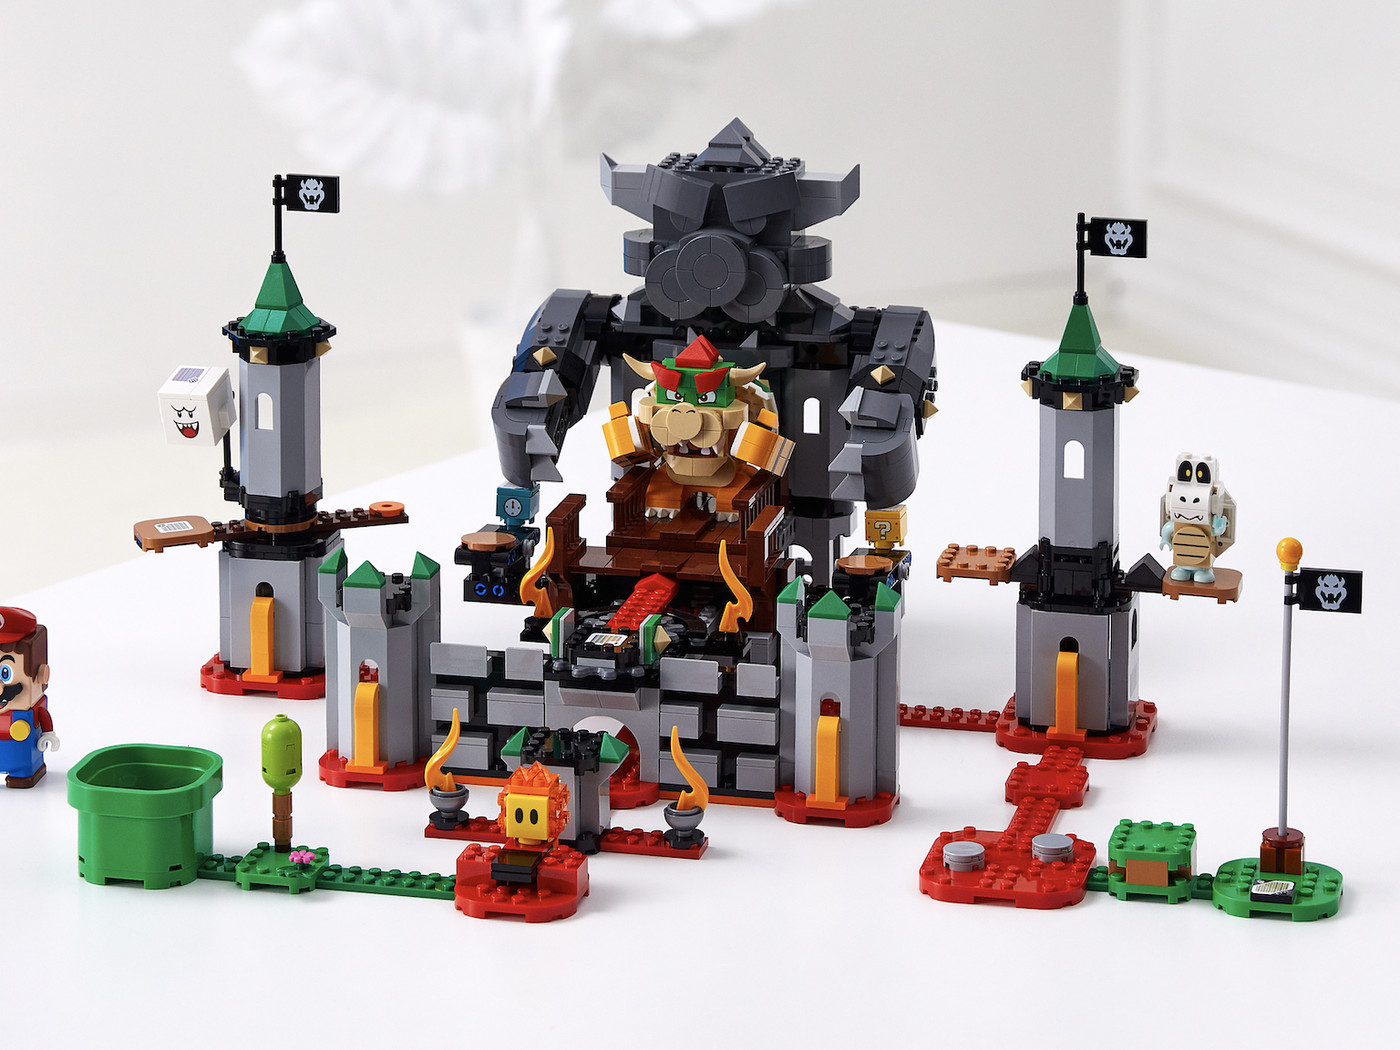 Lego S Interactive Super Mario Sets Will Be Out On August 1st